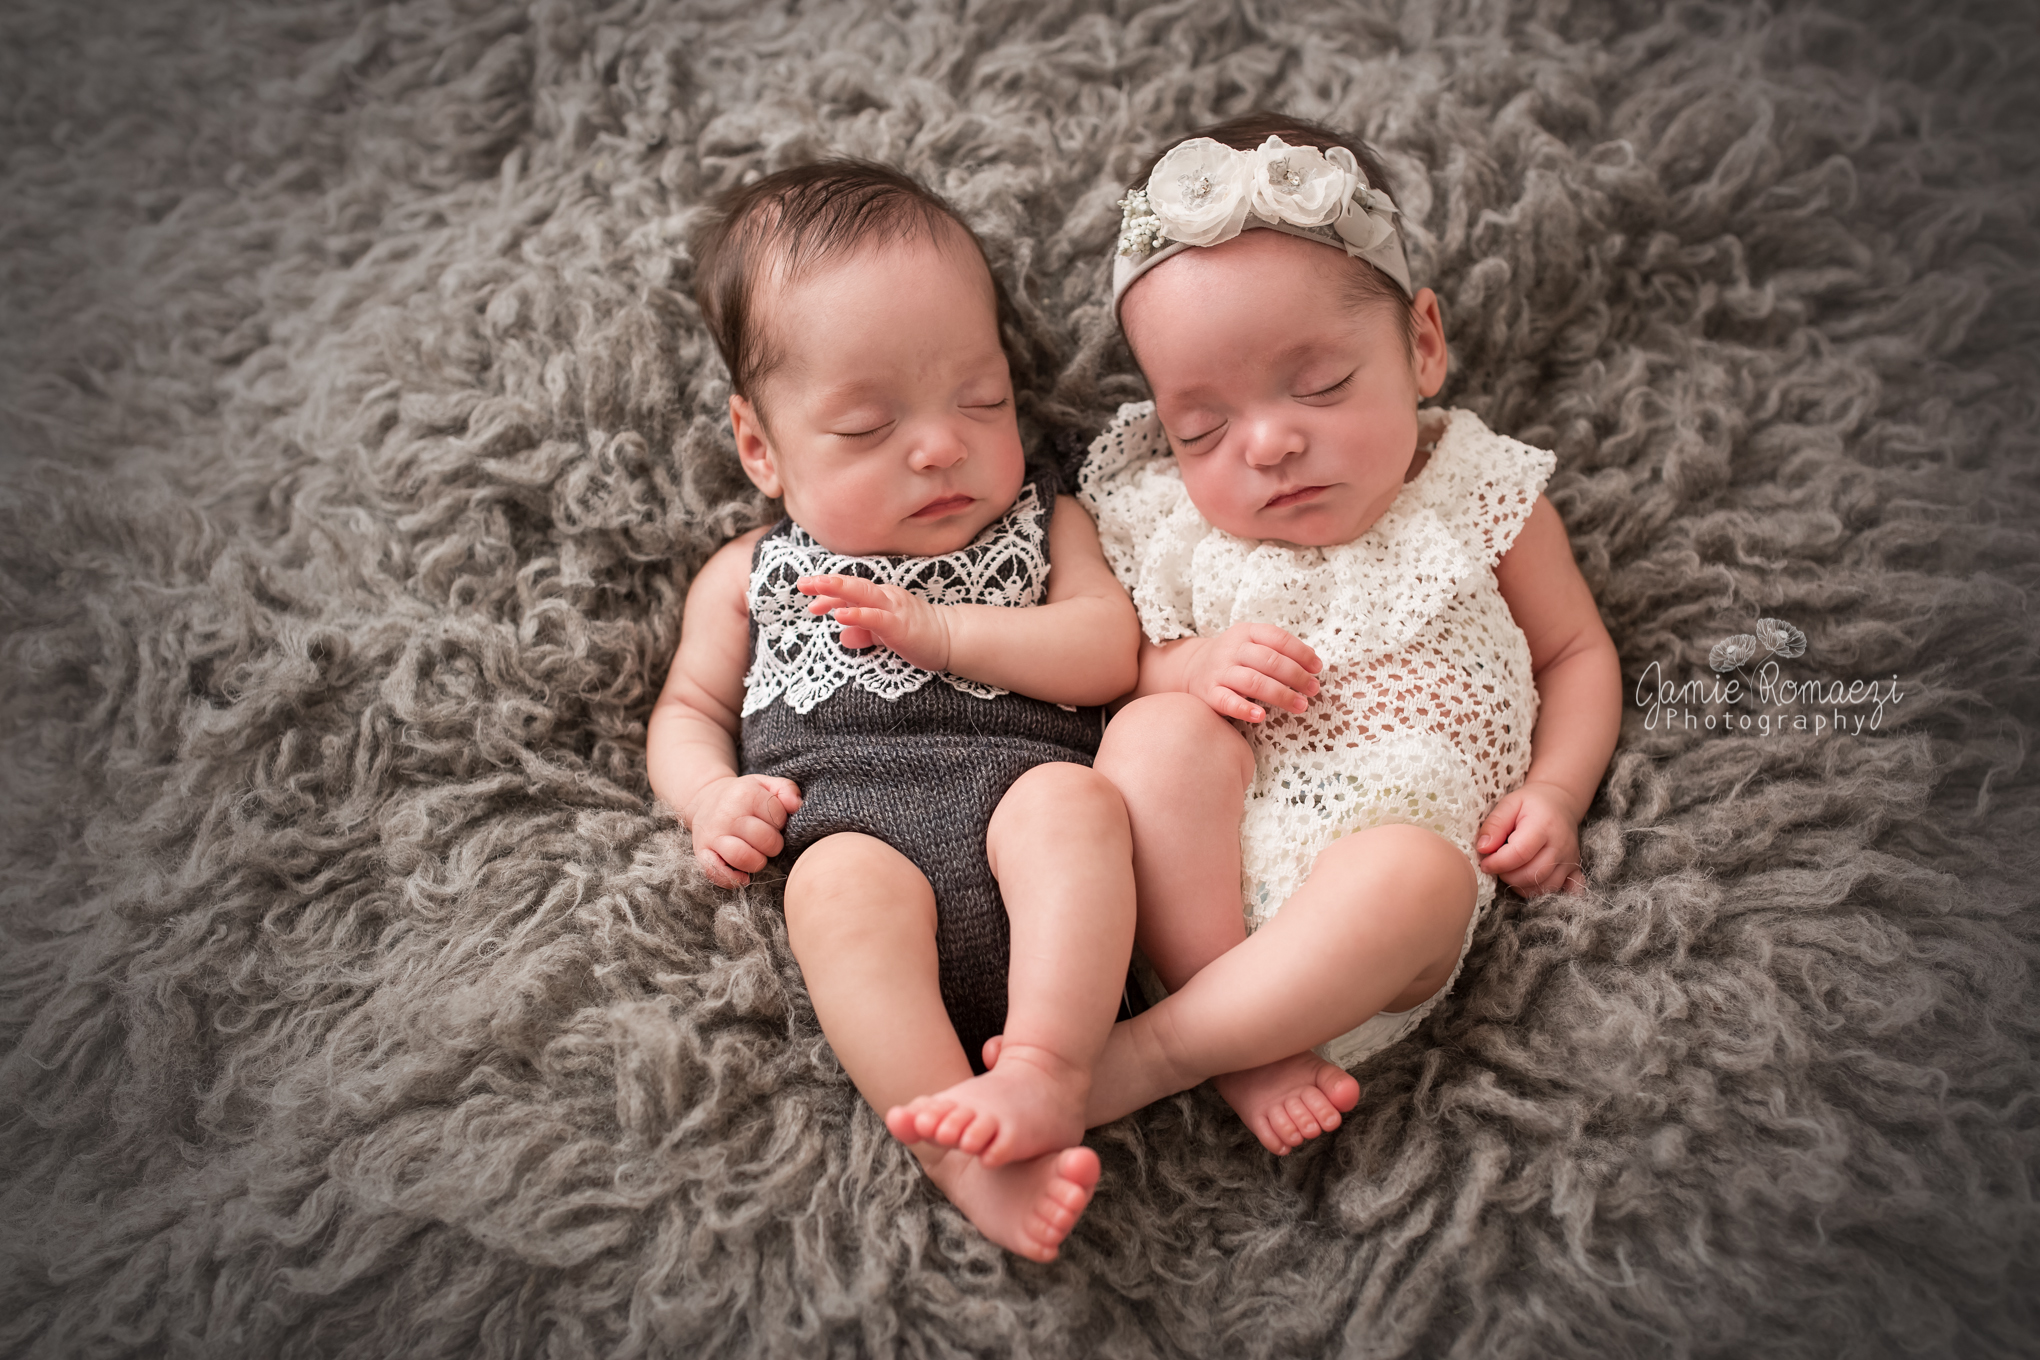 Micro preemie, newborn twin session. Identical twin girls on gray backdrop in gray and white outfits.